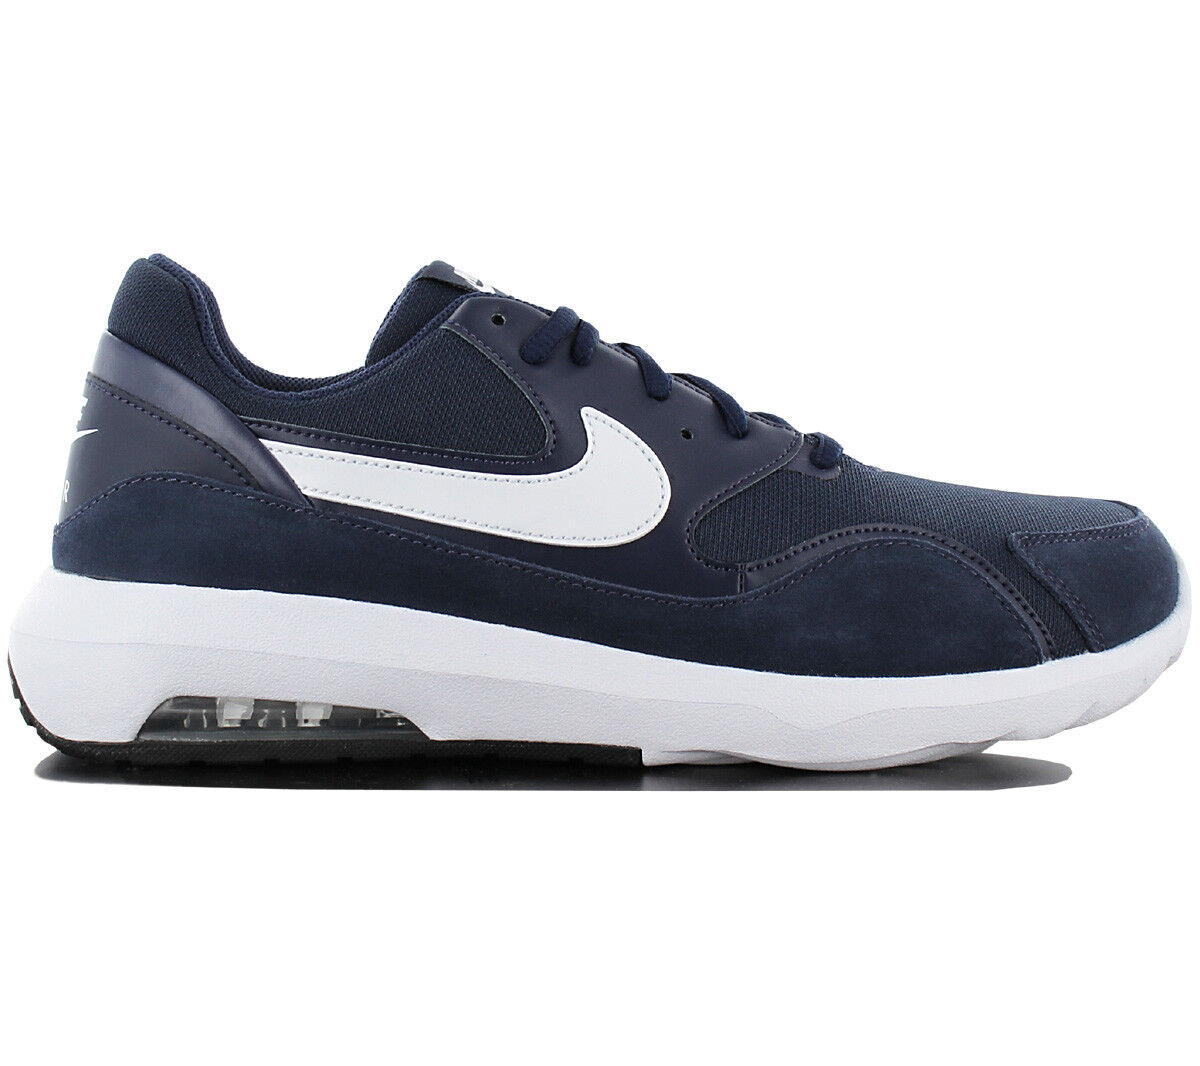 Nike Air Max Nostalgica Sneaker shoes men blue Marina Classic 916781-400